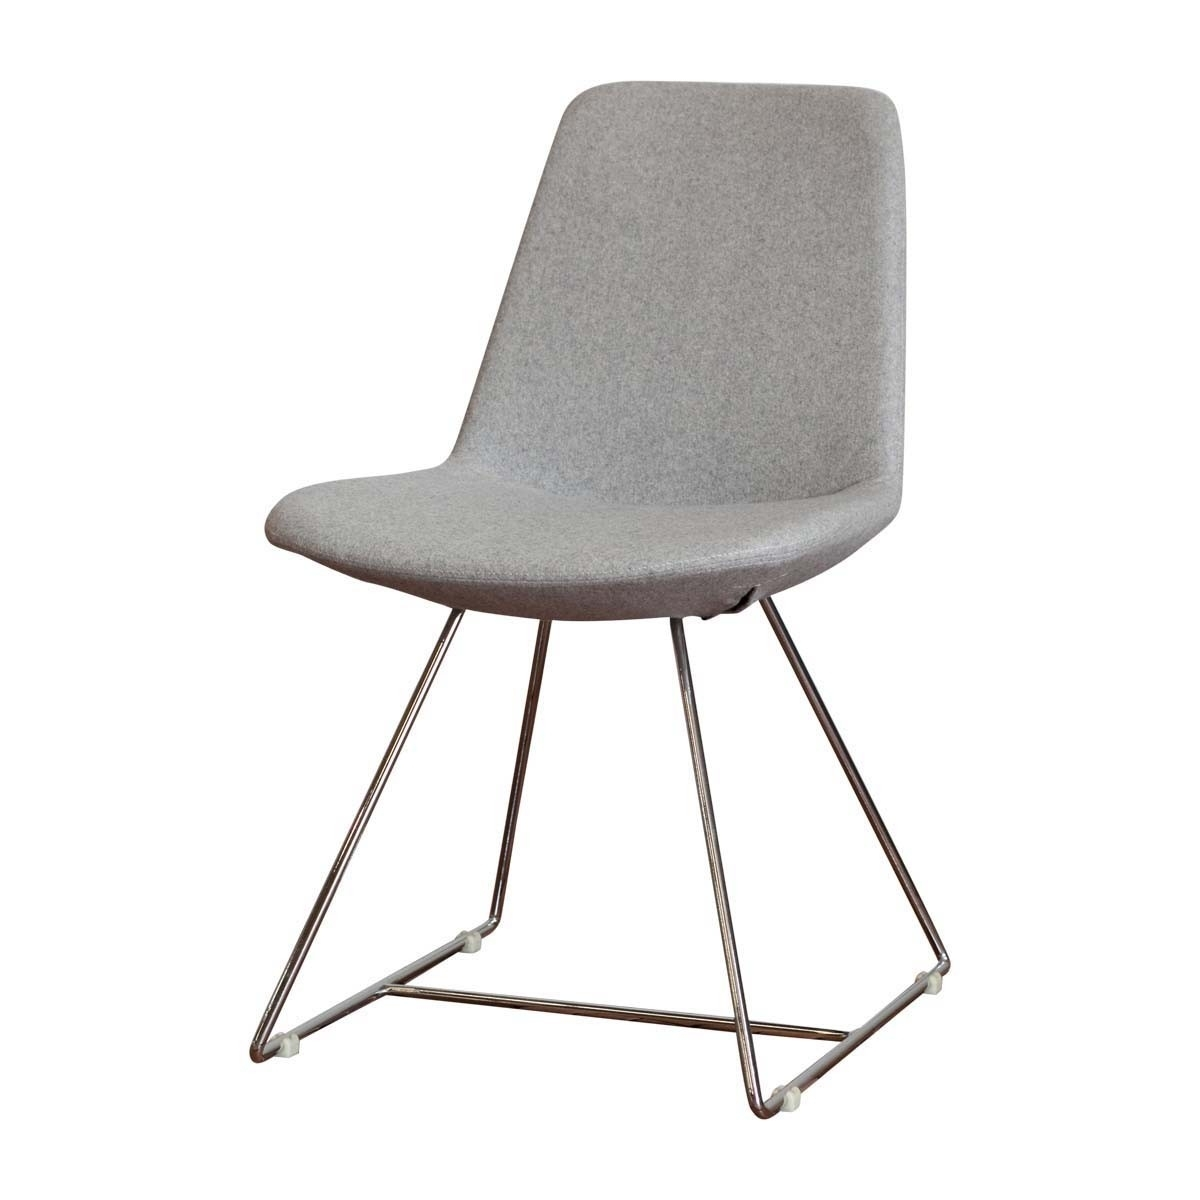 Chrome Dining Chairs With Current Life Interiors – Parker Chrome Dining Chair (Grey) – Modern Dining (Gallery 3 of 25)